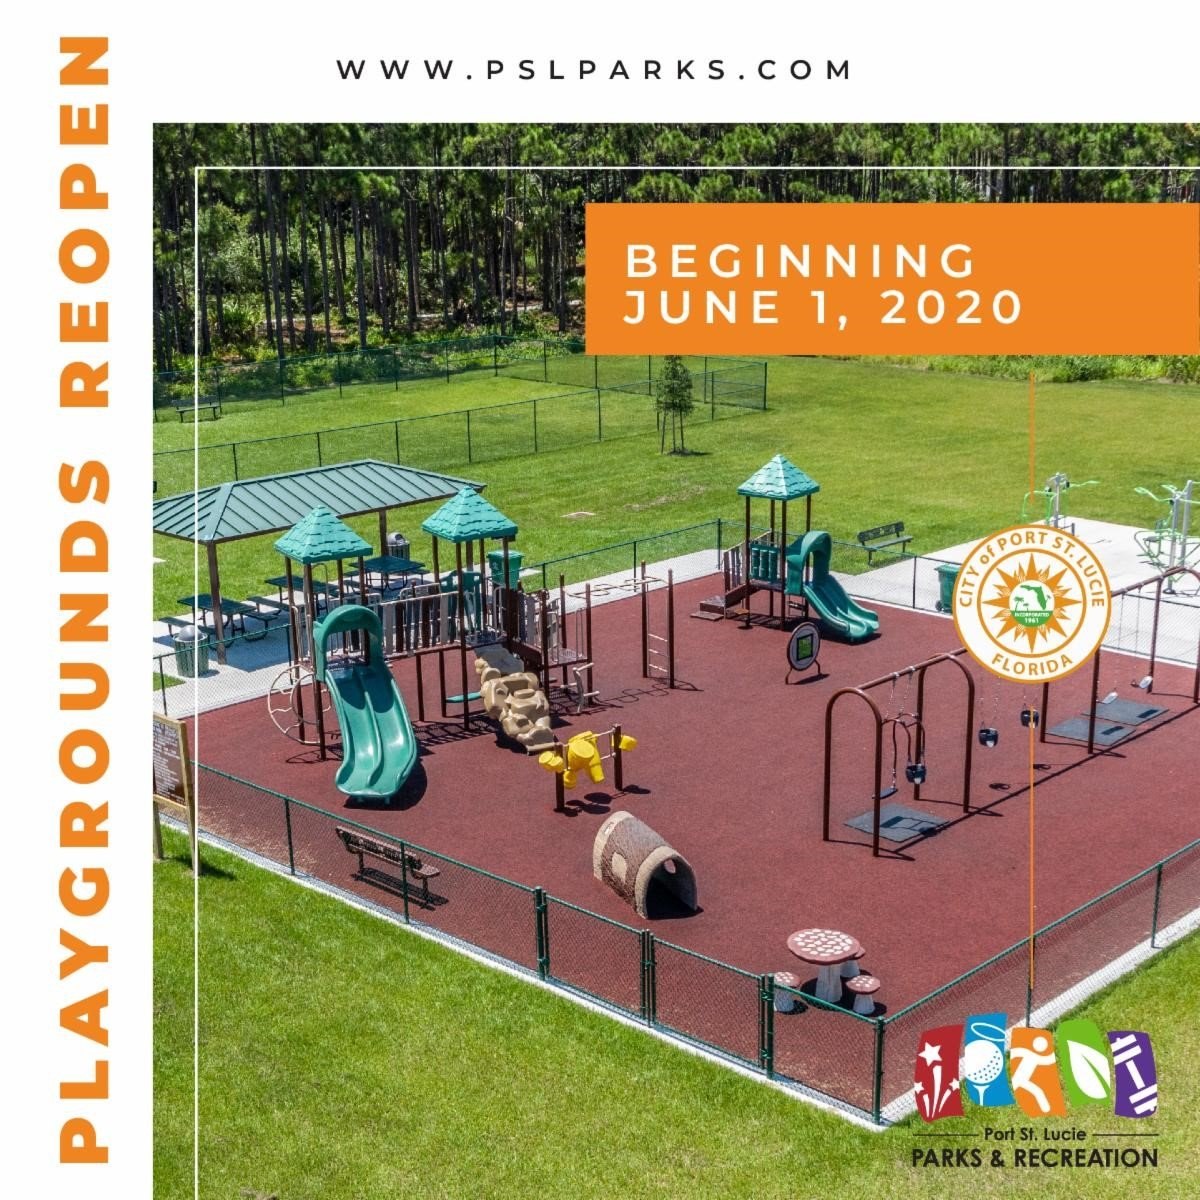 City of Port St. Lucie Graphic representing a playground and showing playgrounds reopen on June 1, 2020